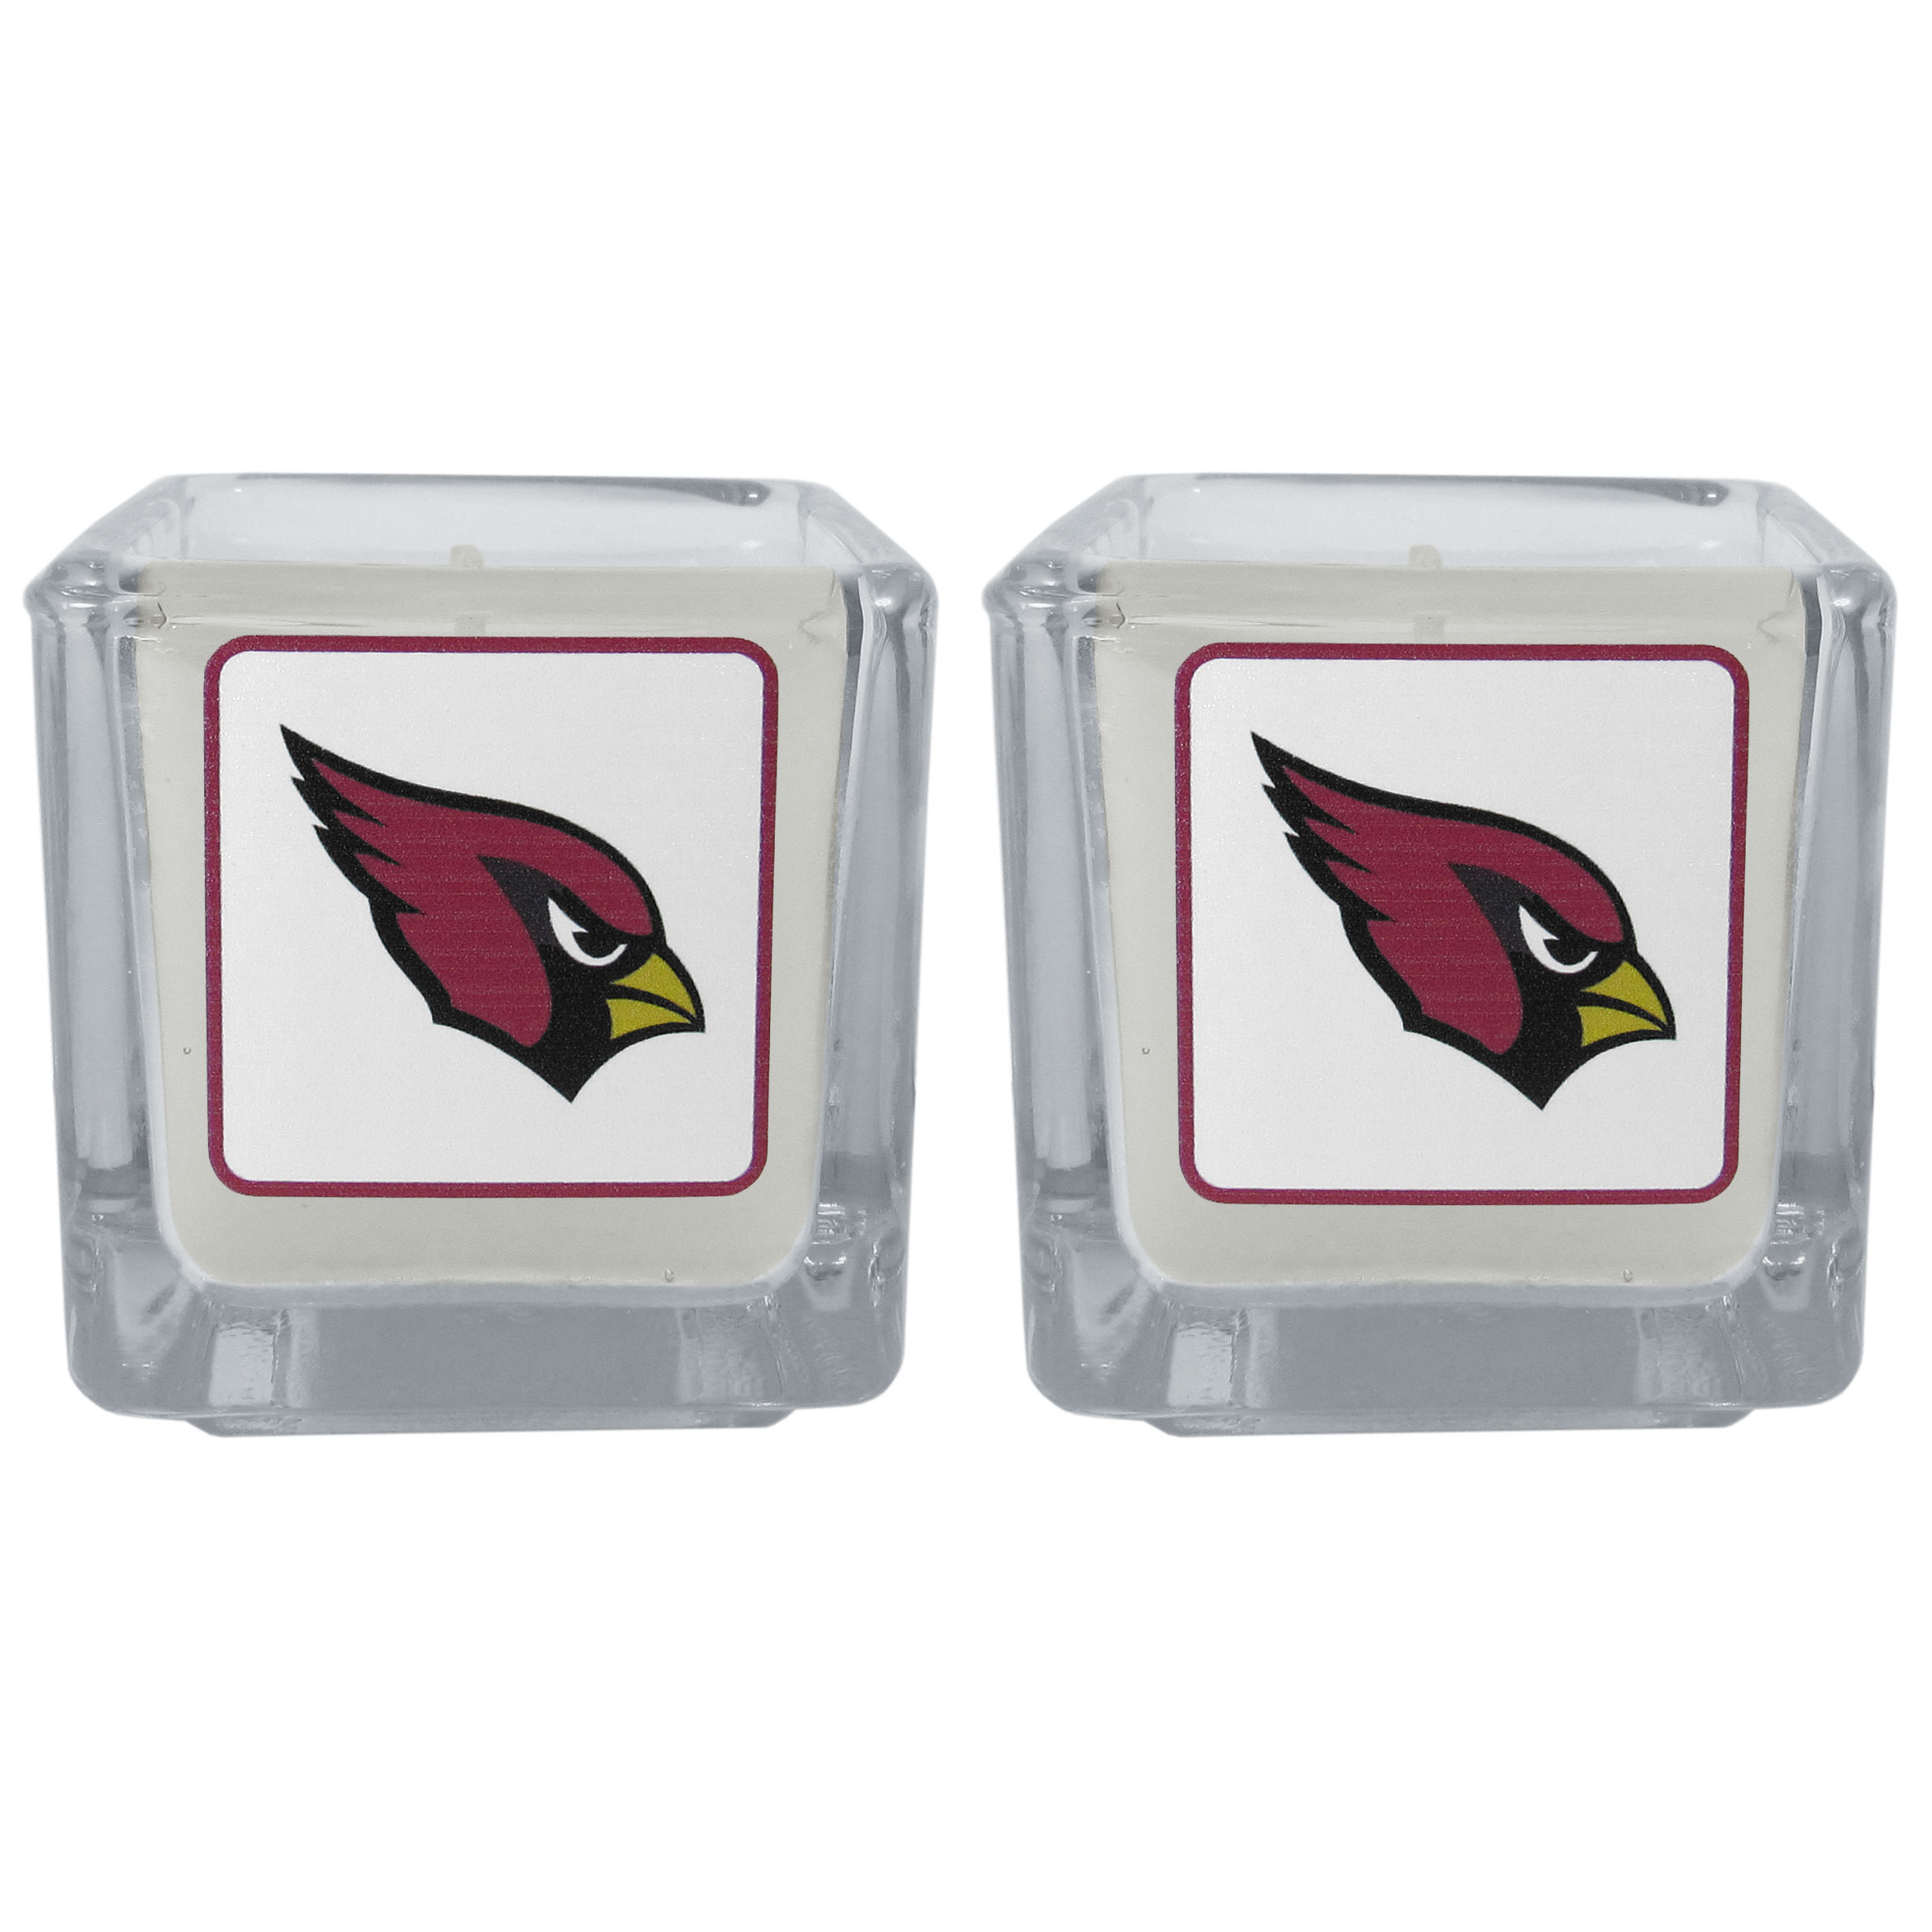 Arizona Cardinals Graphics Candle Set - Our candle set features 2 lightly vanilla scented candles with the Arizona Cardinals logo expertly printed on front. The candles are 2 inches tall in the votive style.